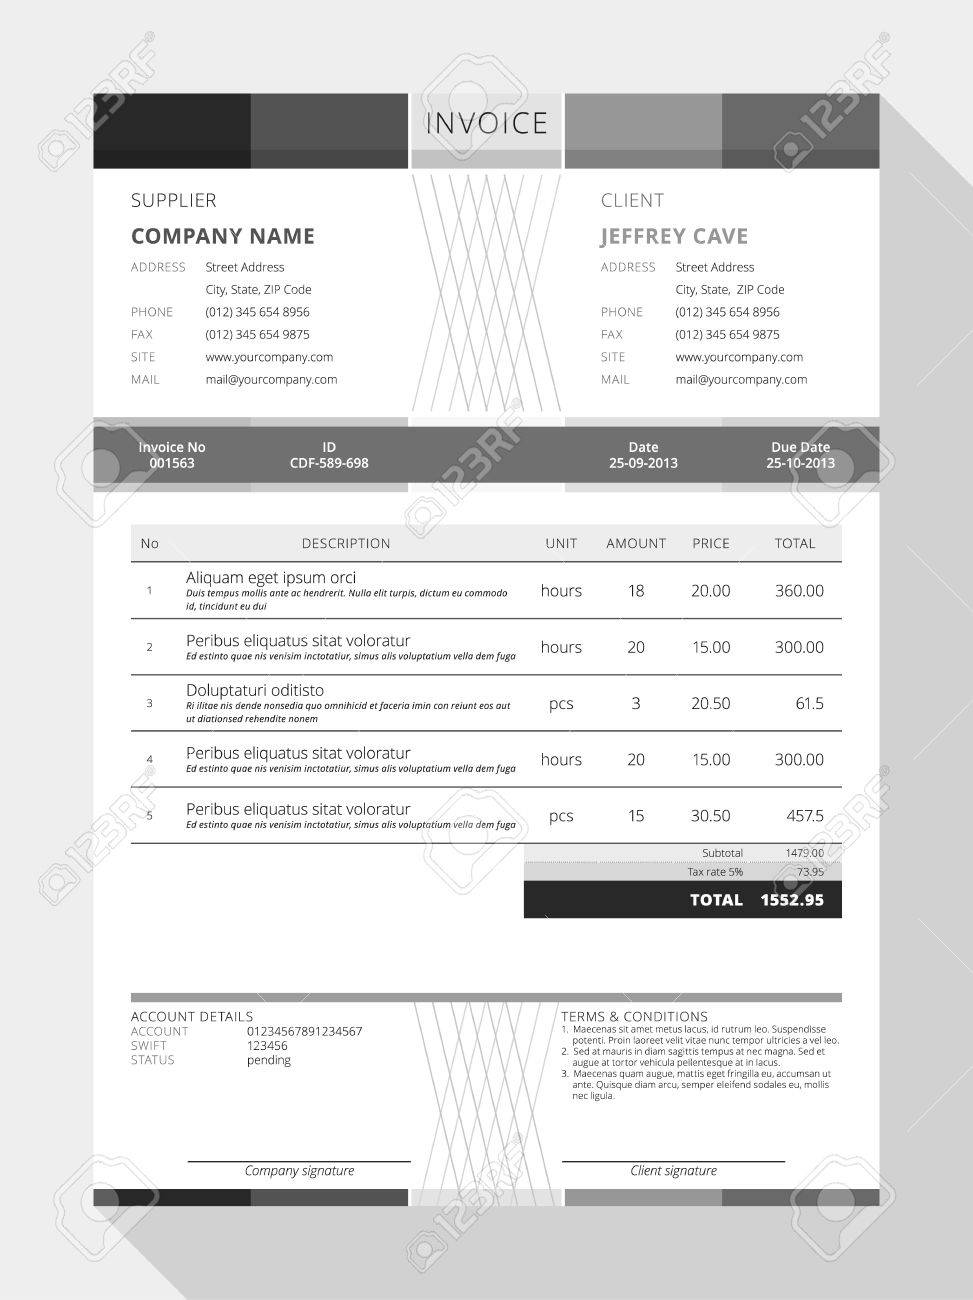 Maidofhonortoastus  Wonderful Design An Invoice  Professional Graphic Design Invoice  With Gorgeous Vector Customizable Invoice Form Template Design Vector   Design An Invoice With Cool How Do You Send An Invoice Also Commercial Invoice Excel In Addition Consulting Invoice Templates And Ebay Invoices For Sellers As Well As Invoice On Excel Additionally Simple Free Invoice Template From Happytomco With Maidofhonortoastus  Gorgeous Design An Invoice  Professional Graphic Design Invoice  With Cool Vector Customizable Invoice Form Template Design Vector   Design An Invoice And Wonderful How Do You Send An Invoice Also Commercial Invoice Excel In Addition Consulting Invoice Templates From Happytomco